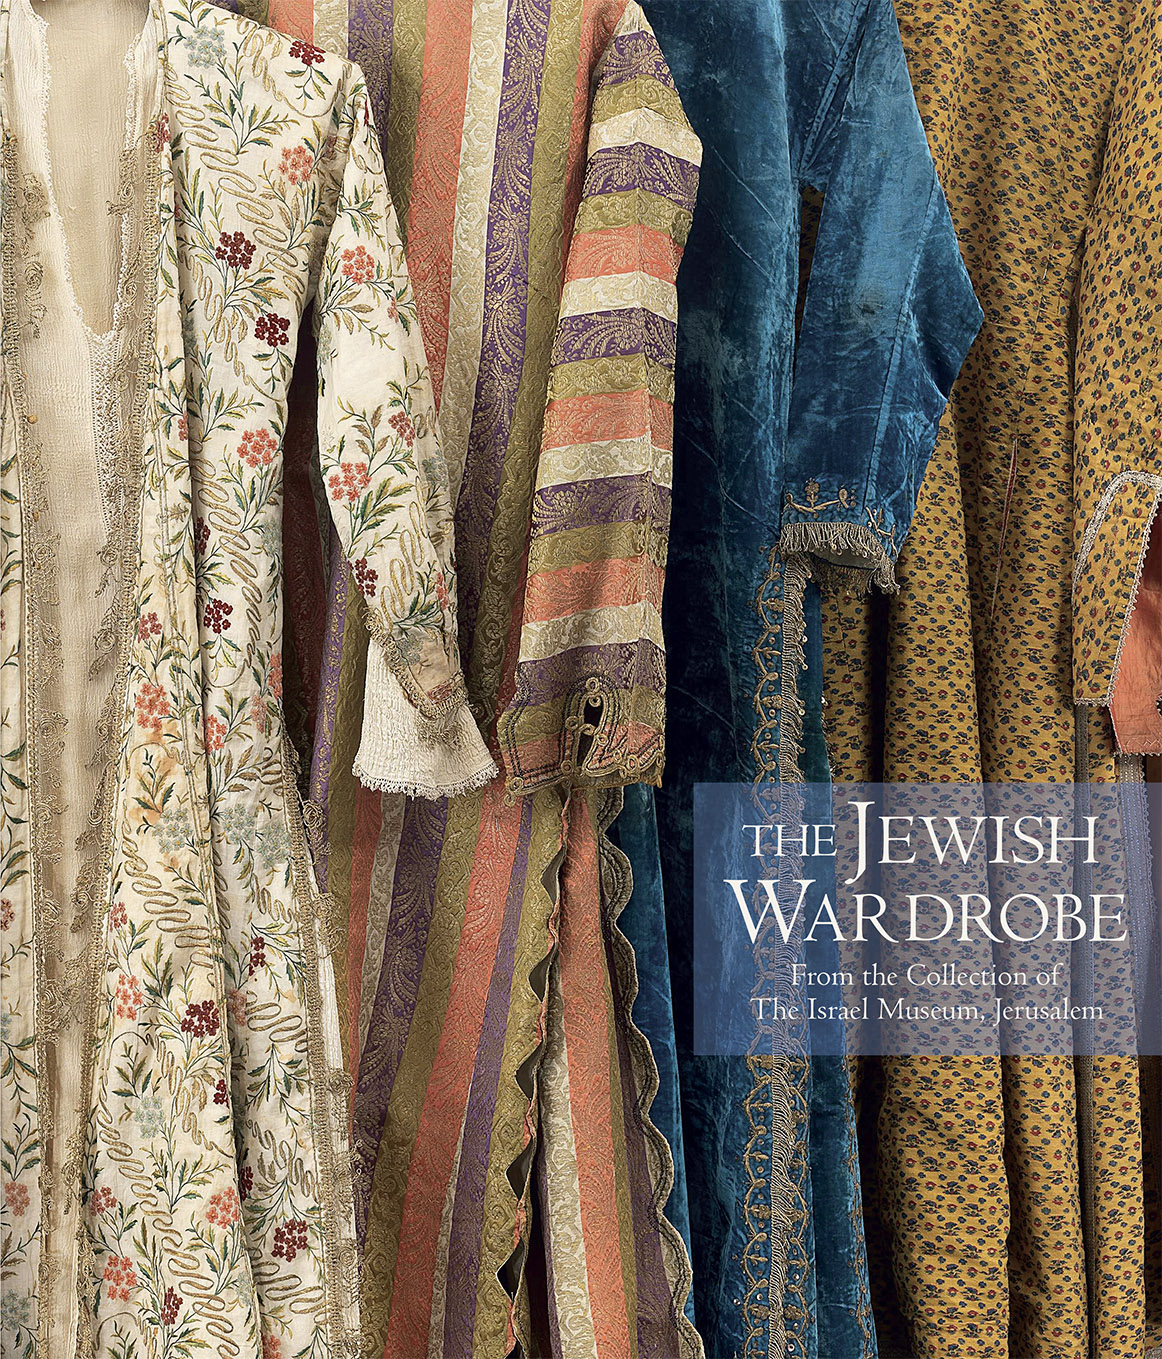 The Jewish Wardrobe: From The Collection Of The Israel Museum, Jerusalem